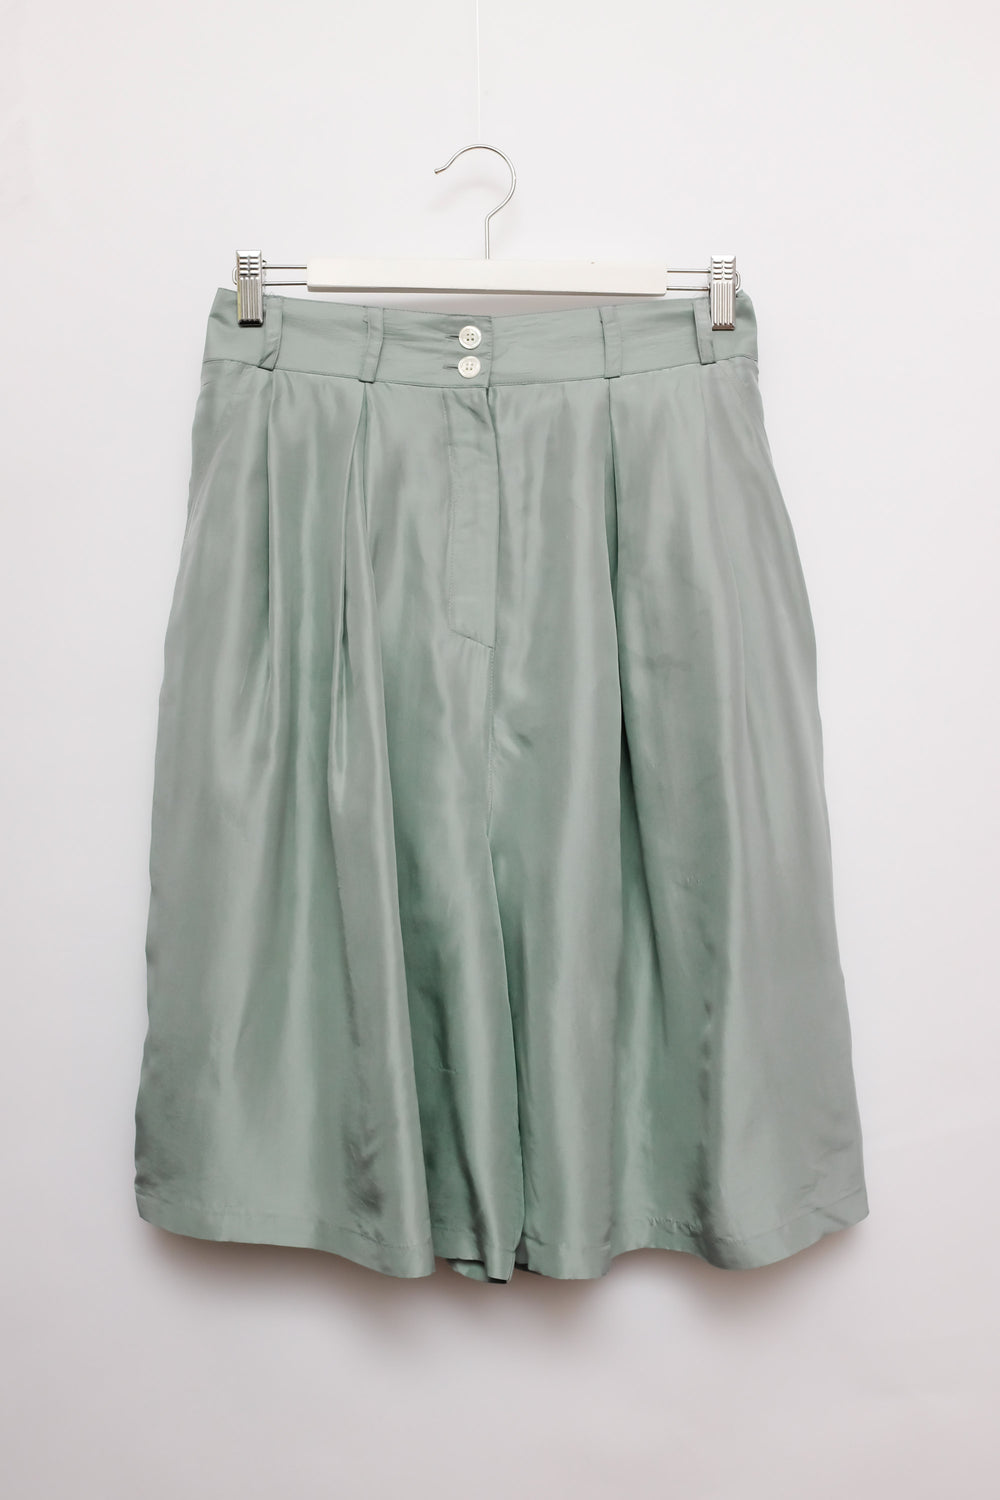 0015_SILK MINT VINTAGE SHORTS